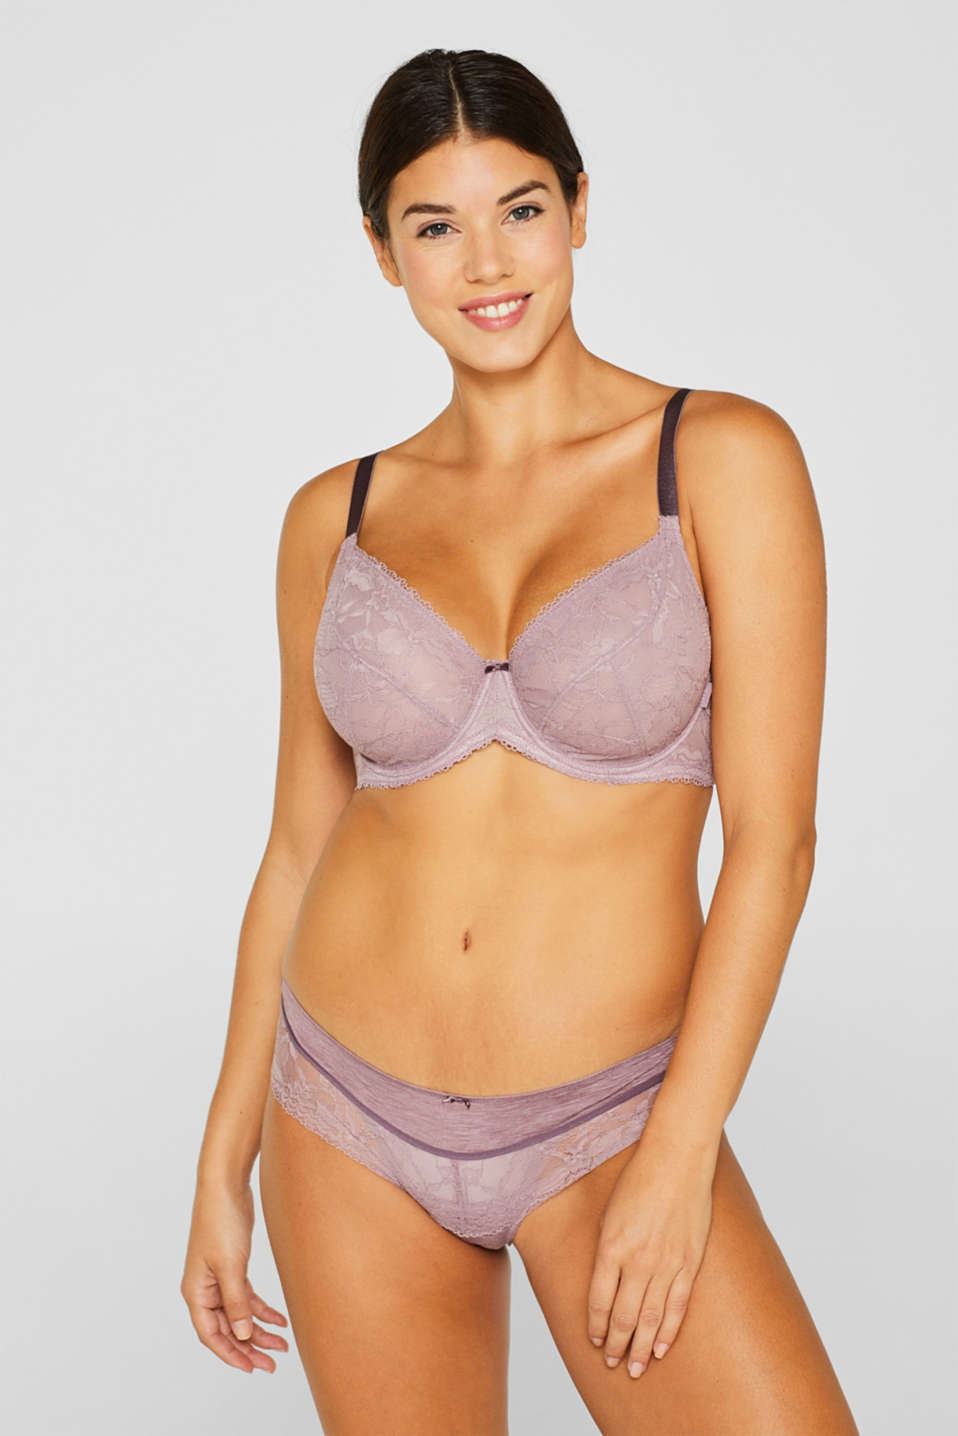 Esprit - Unpadded, mixed material bra for larger cup sizes